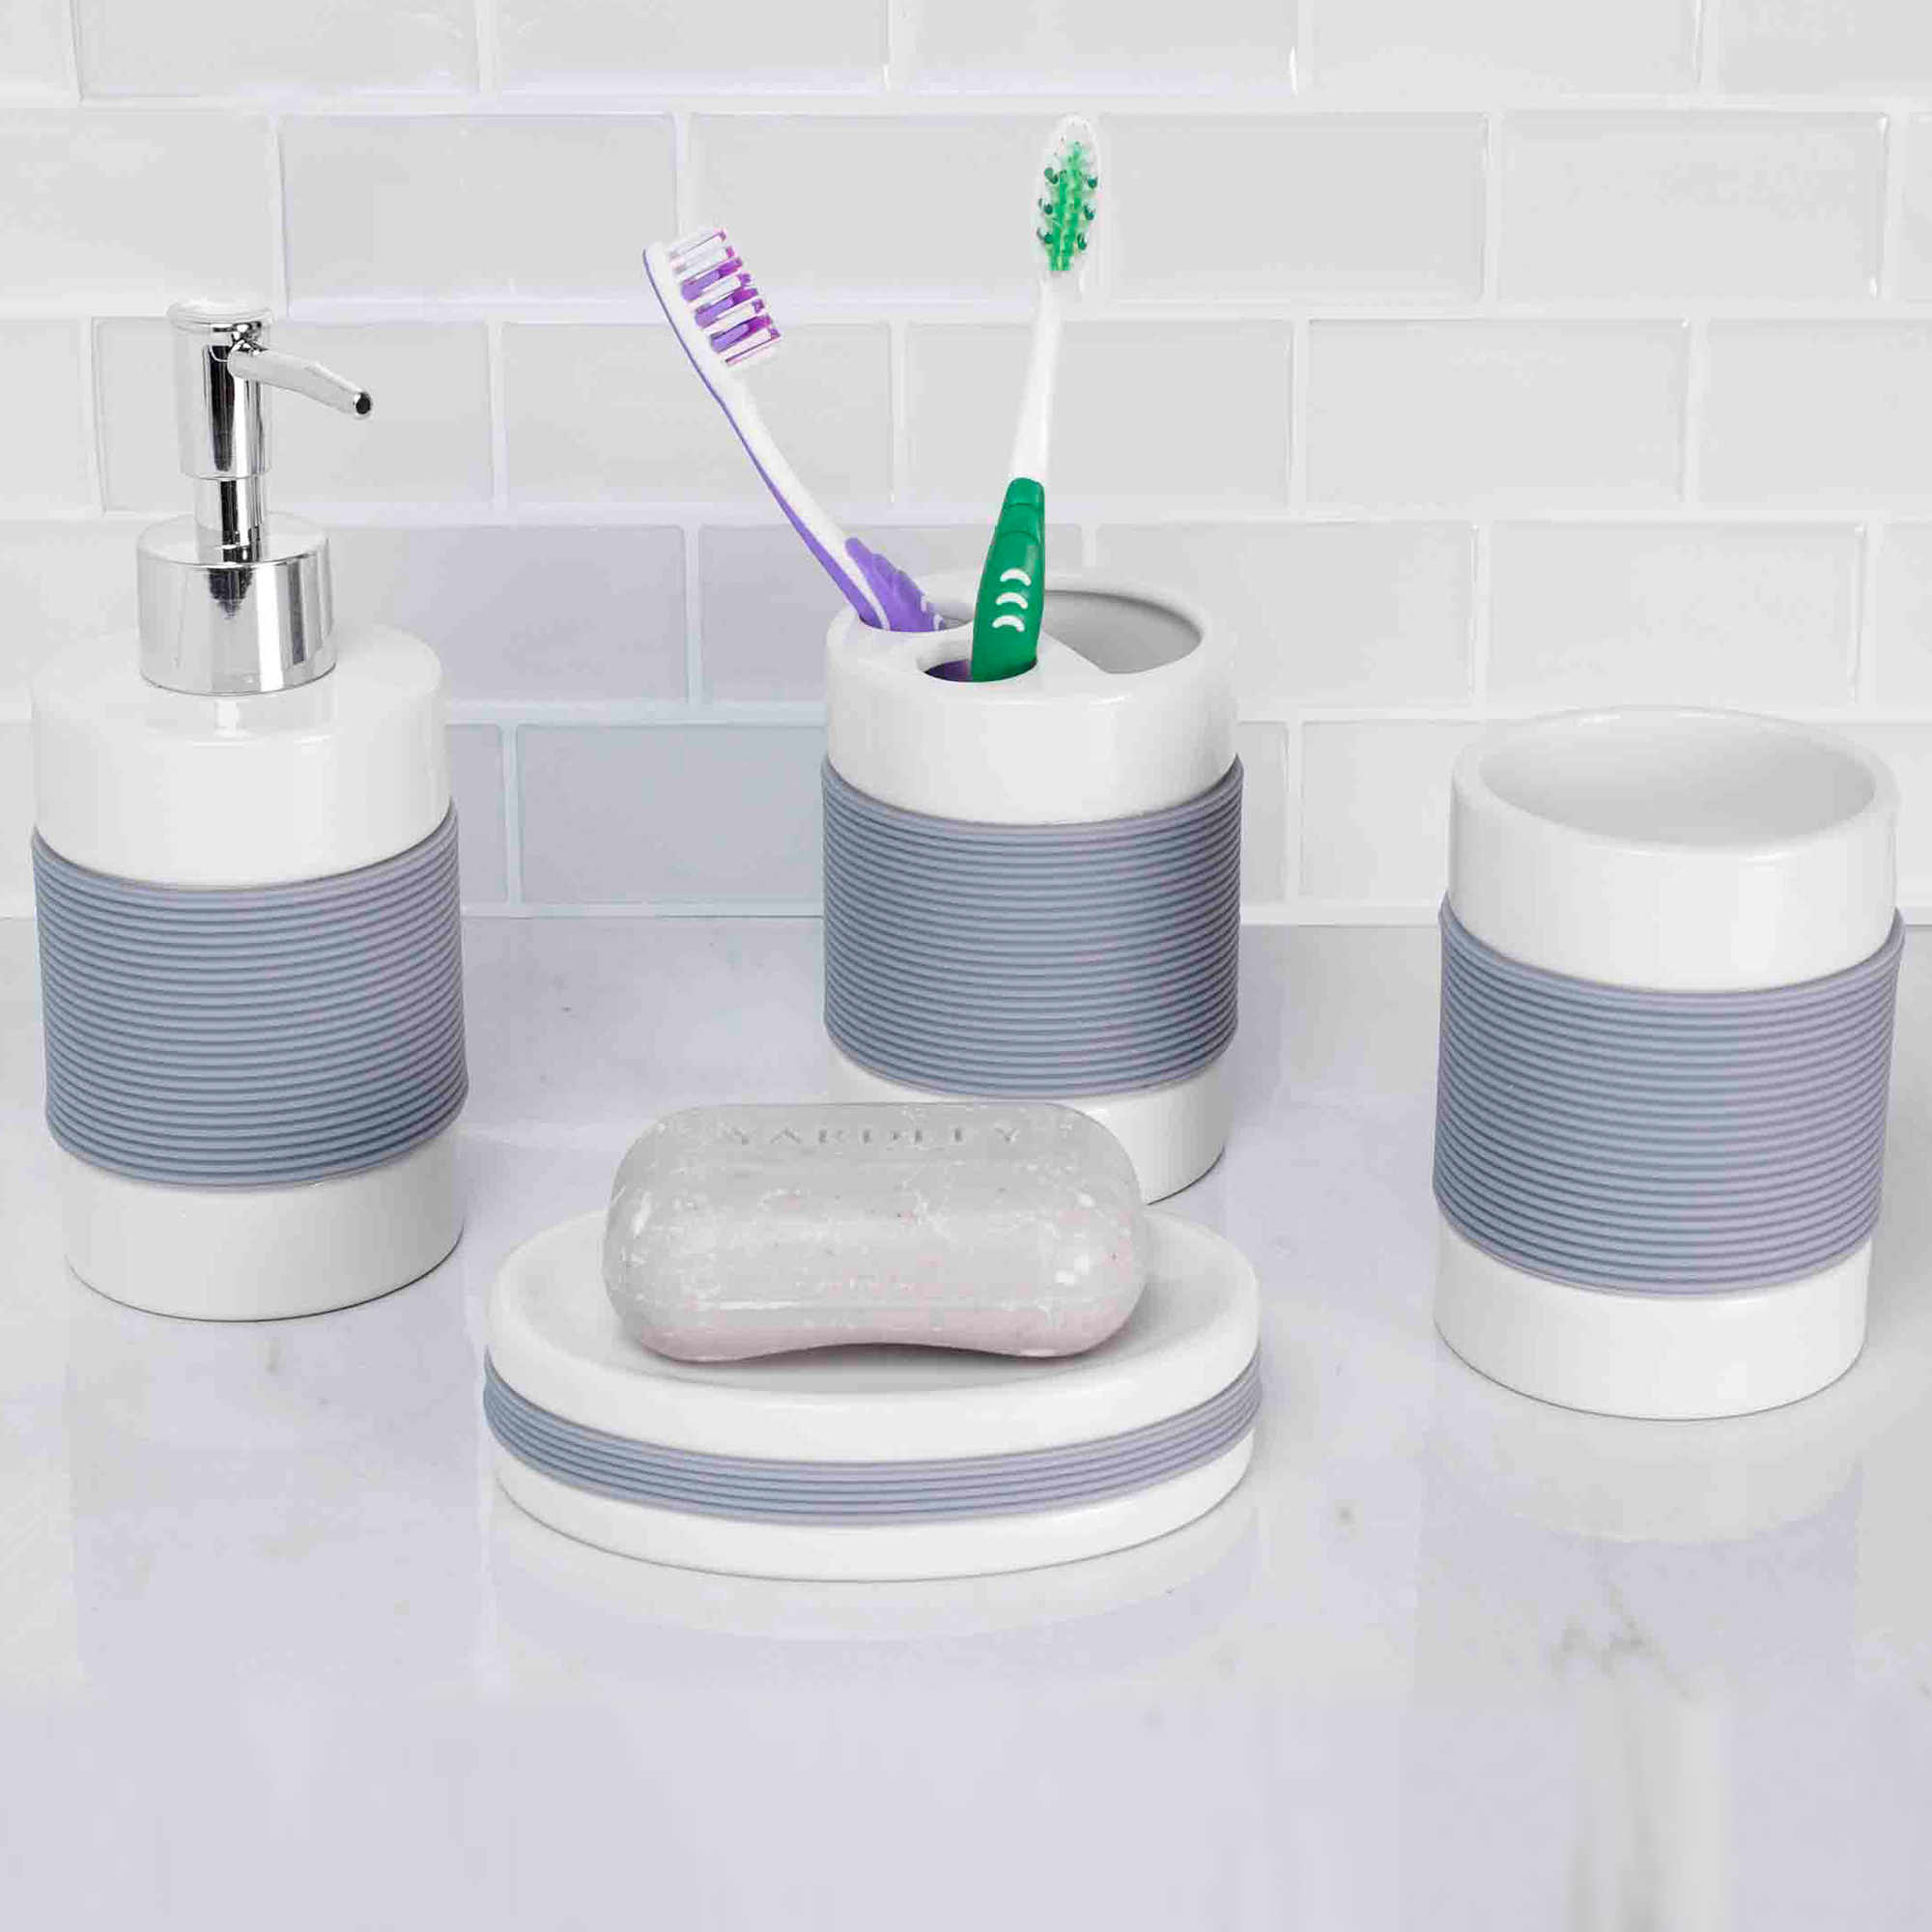 Home Basics White Ceramic Accessories With Rubber Grip 4 Piece Set